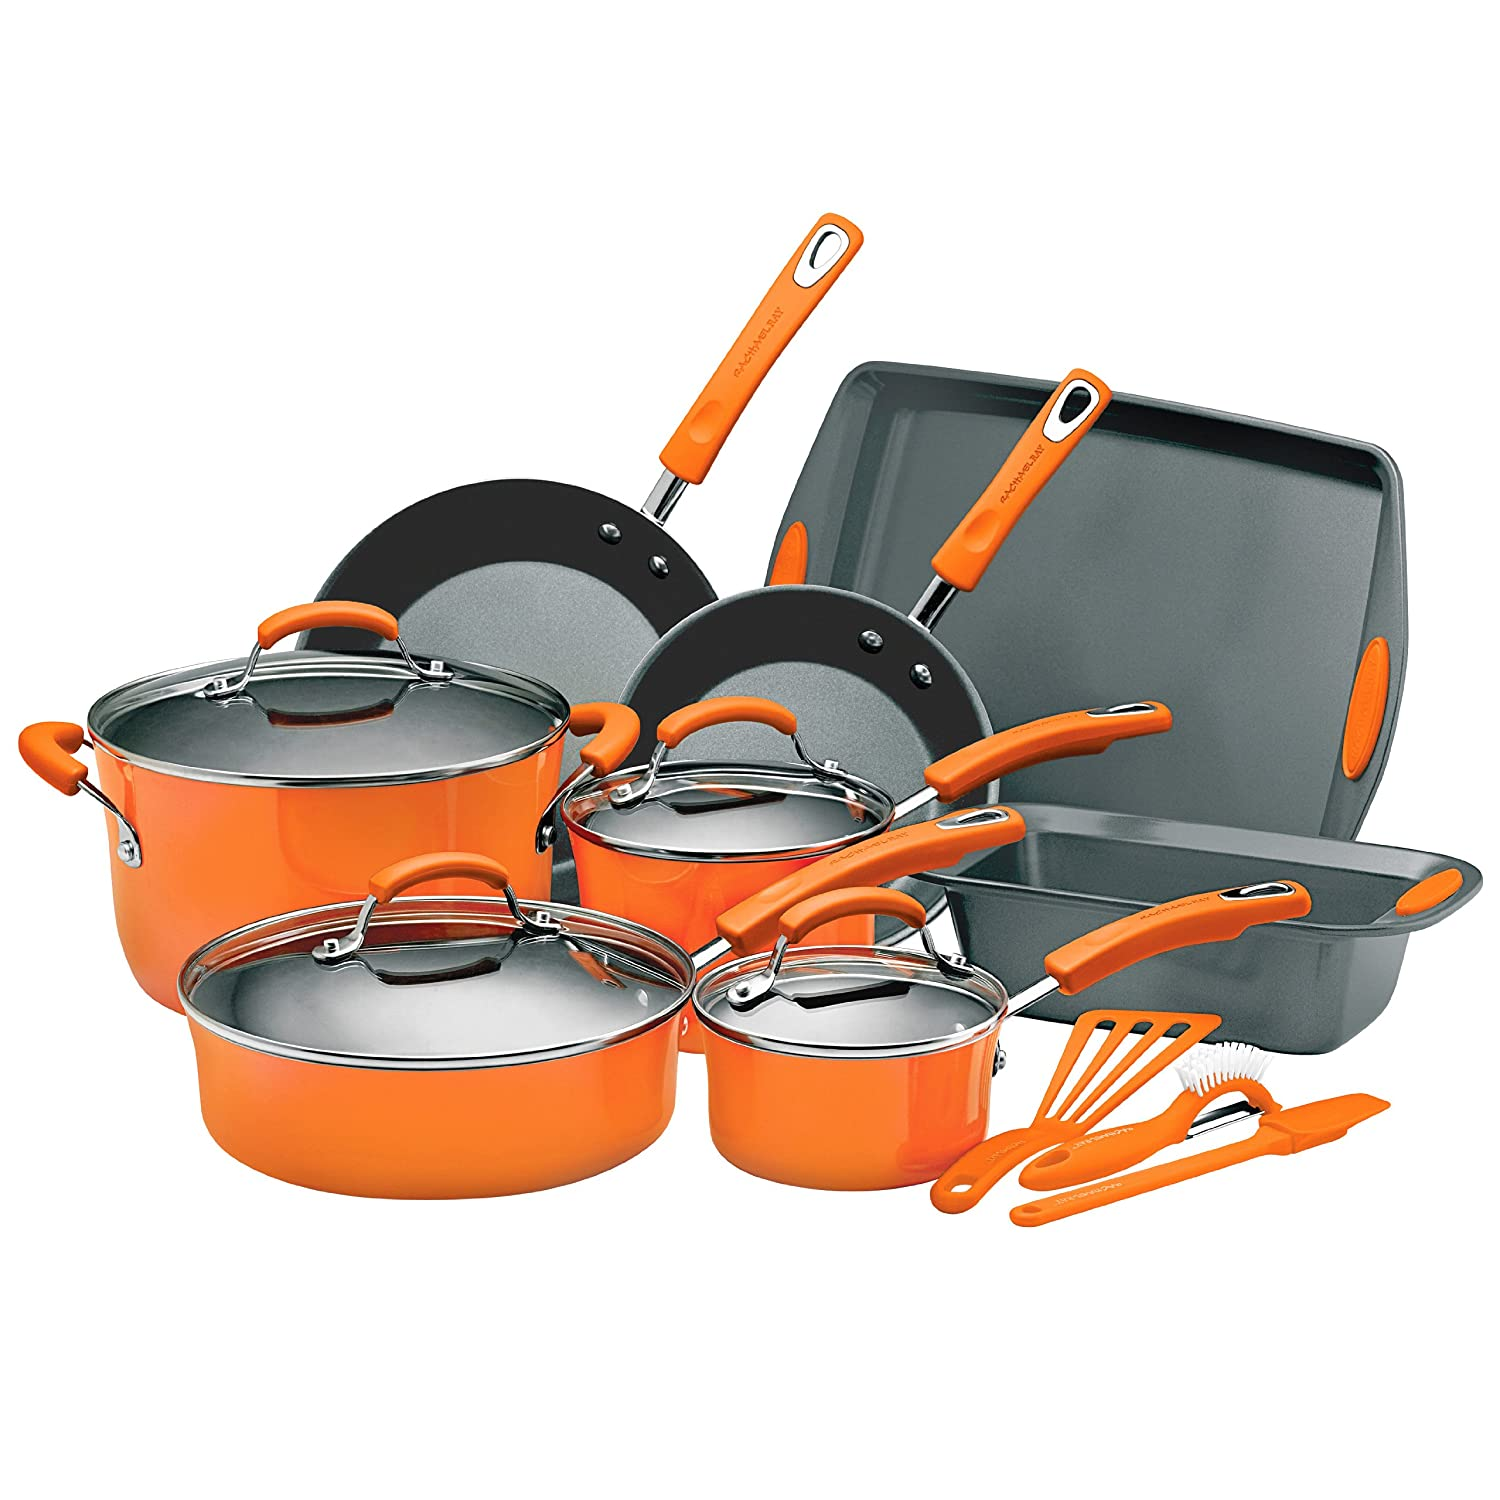 Rachael Ray Porcelain Enamel II Nonstick 15-Piece Cookware Set, Orange $89.00